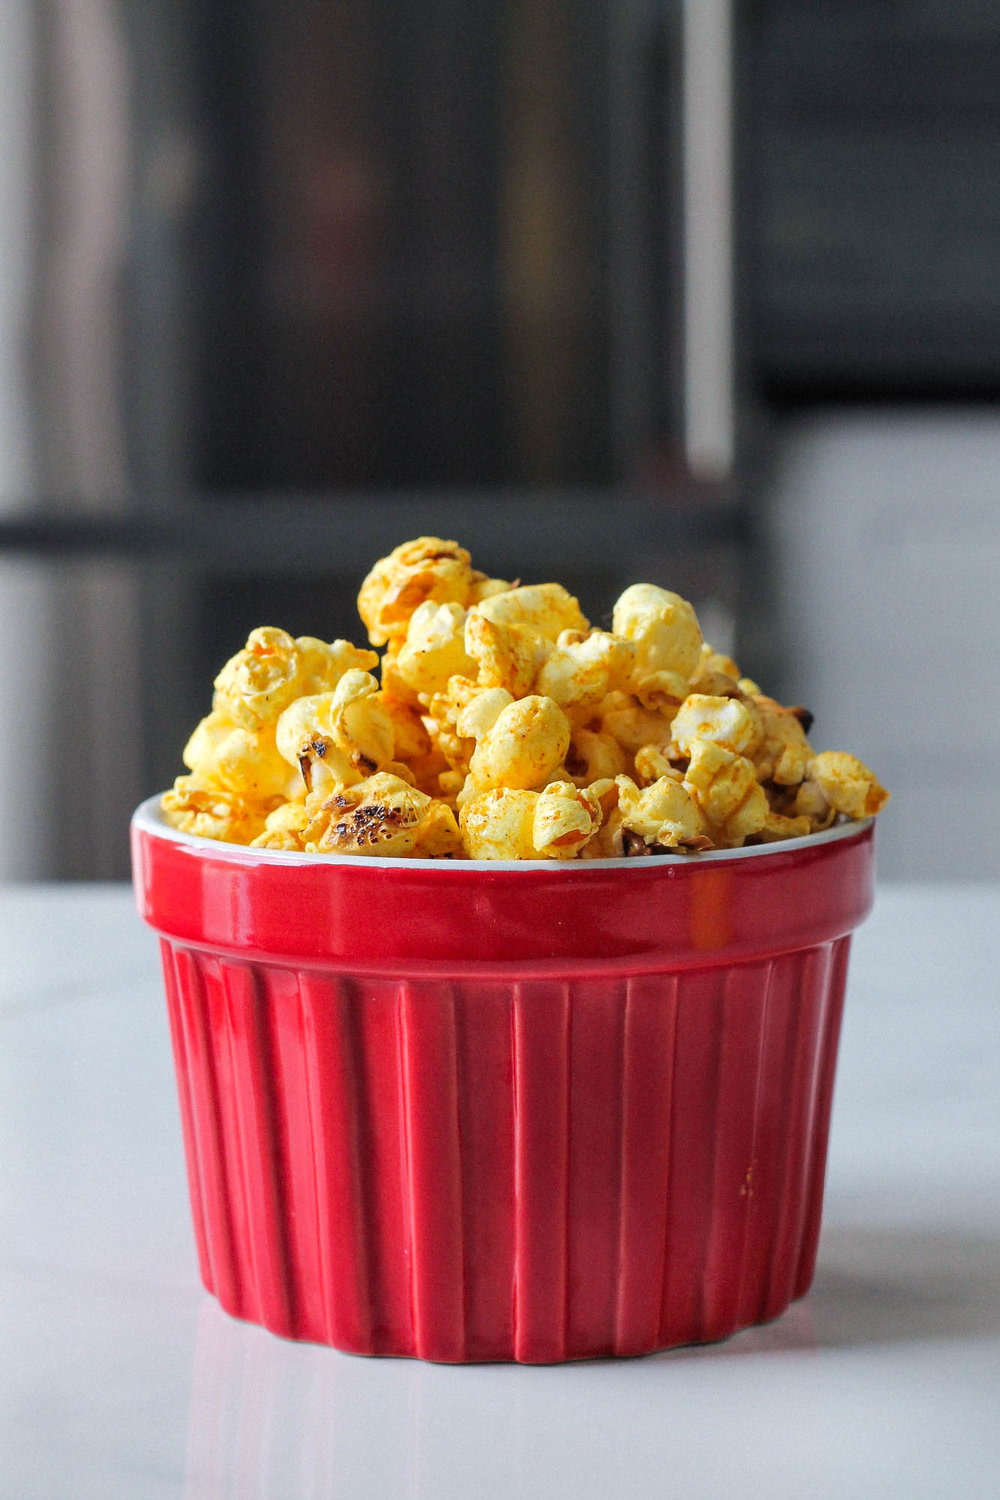 Ras El Hanout + Salted Maple Popcorn || Popcorn Three Ways (Vegan) || Healthy + delicious recipes for 3 popcorn flavours without butter– classic, mexican spiced lime, and ras el hanout with salted maple. All plant based, dairy free, gluten free and easy to make! || www.creamandhoney.ca